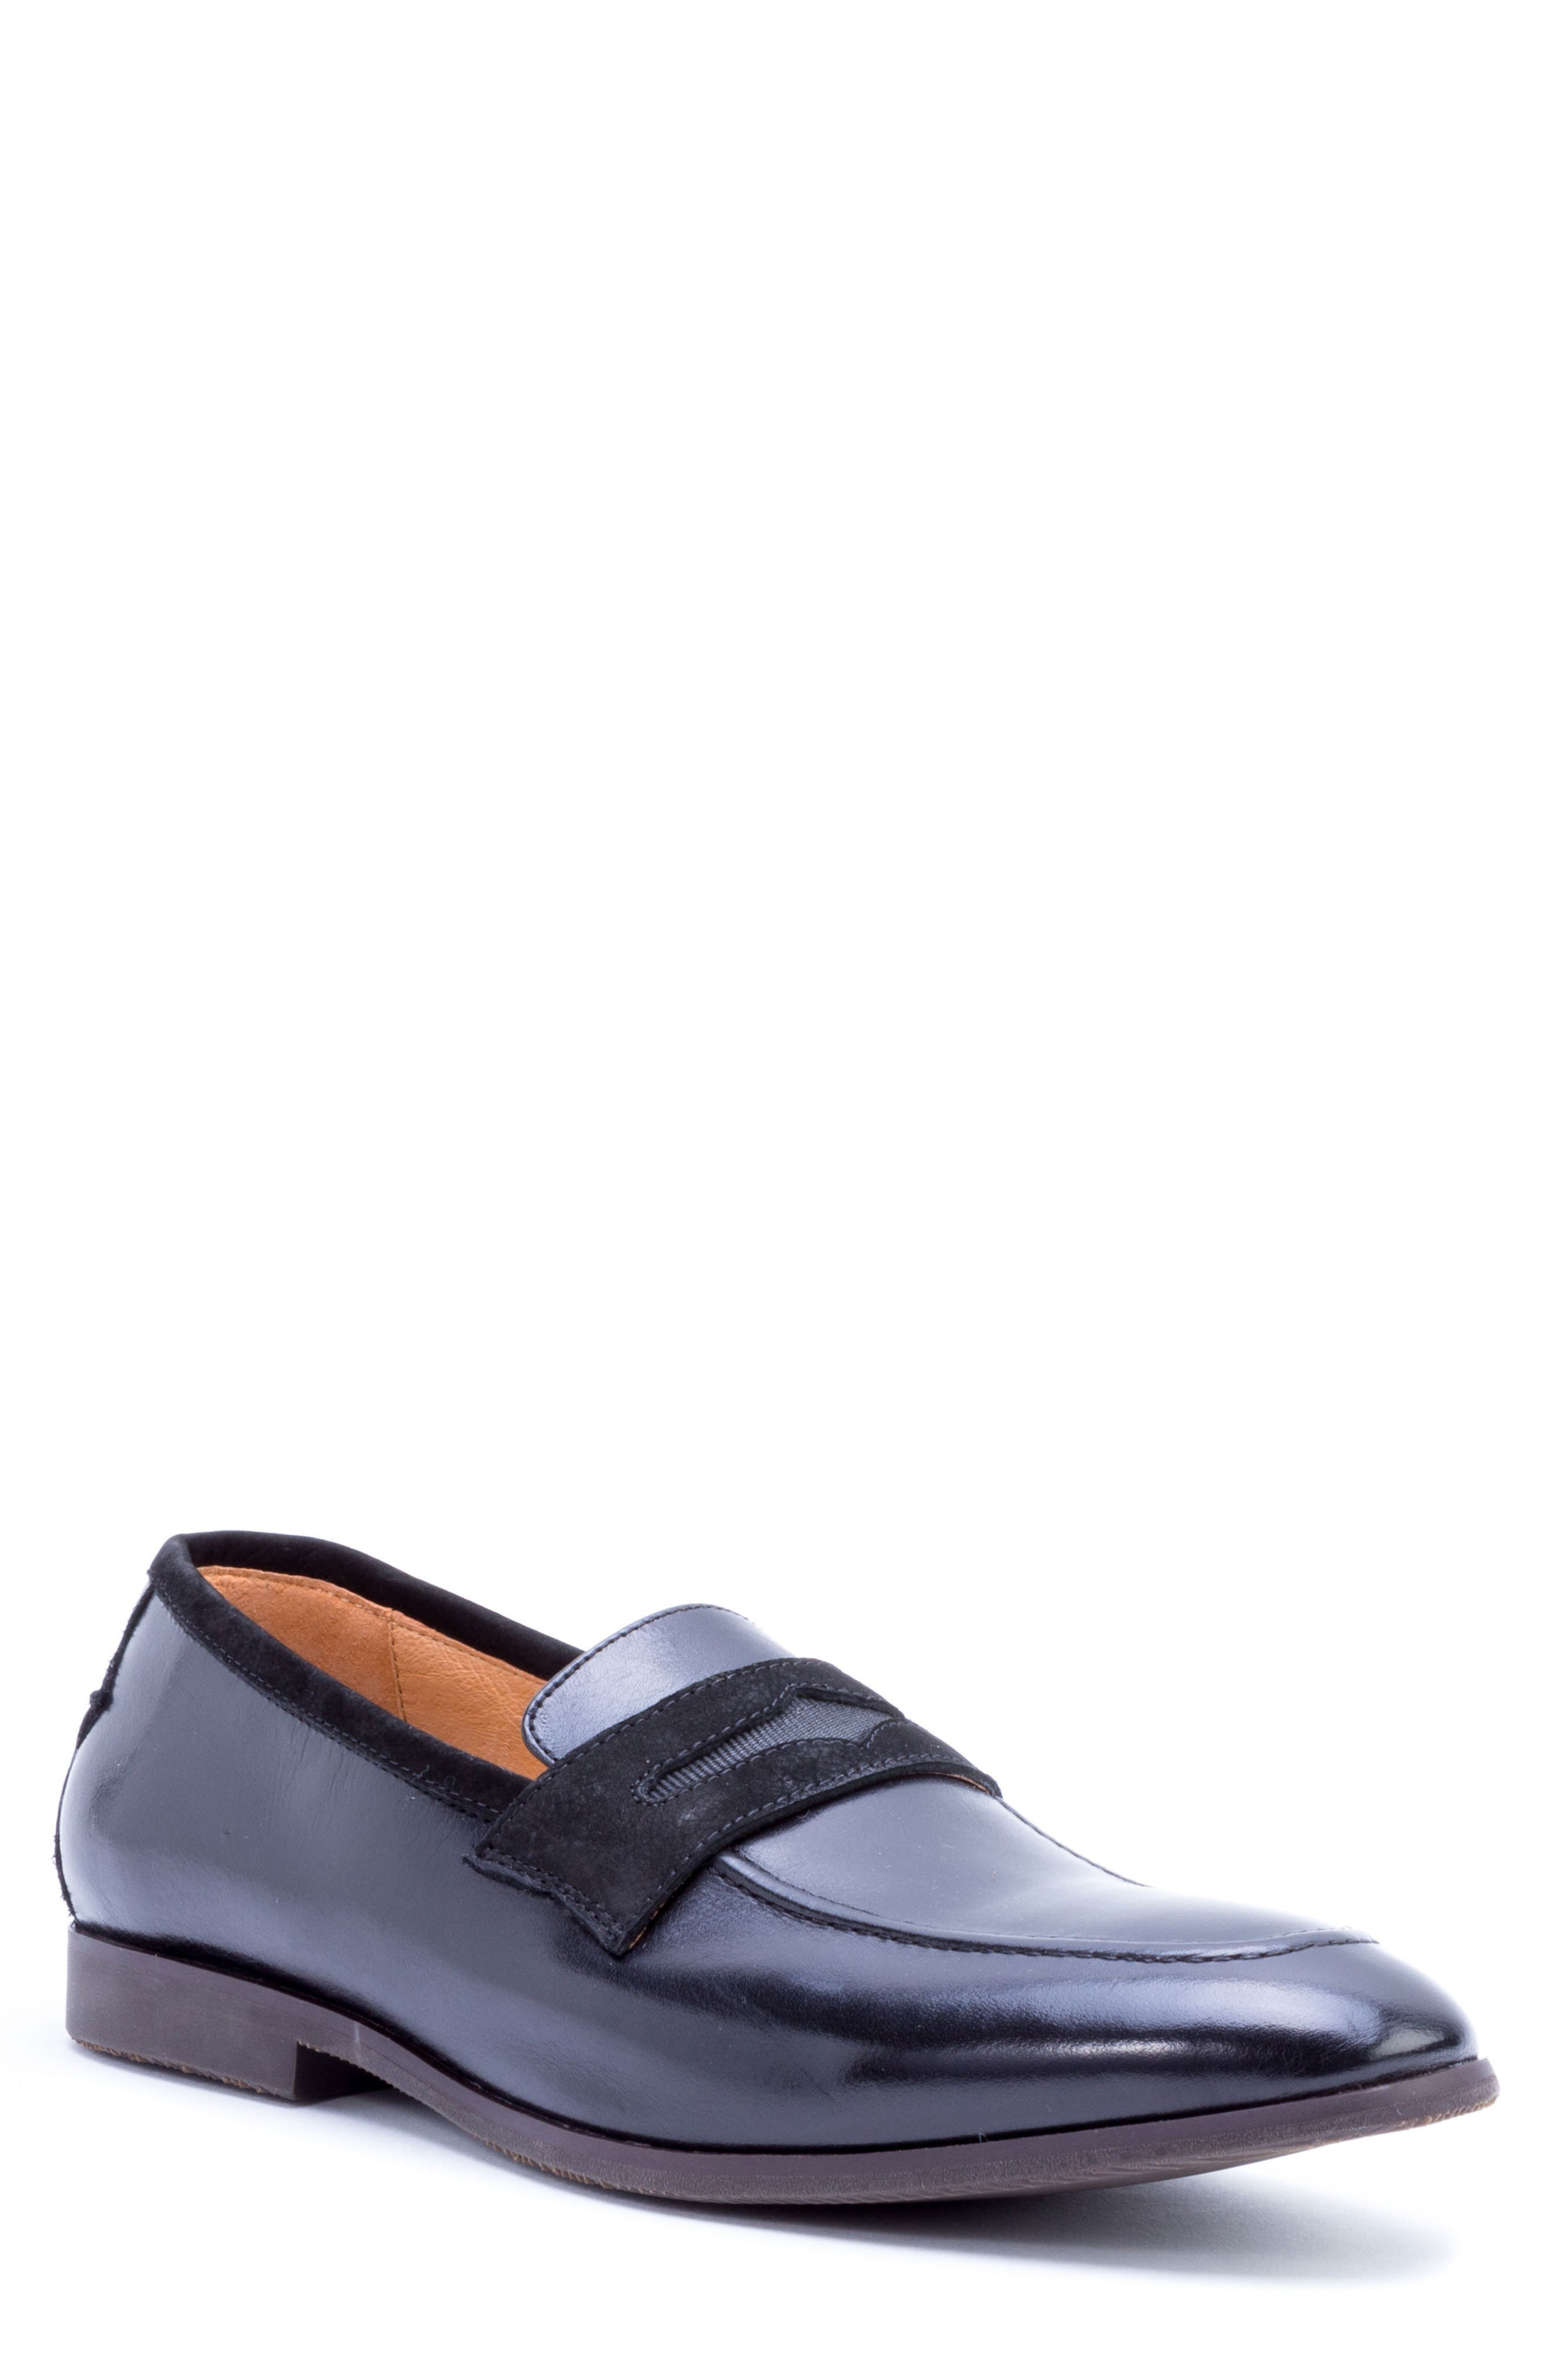 Apron Toe Penny Loafer,                         Main,                         color, 001